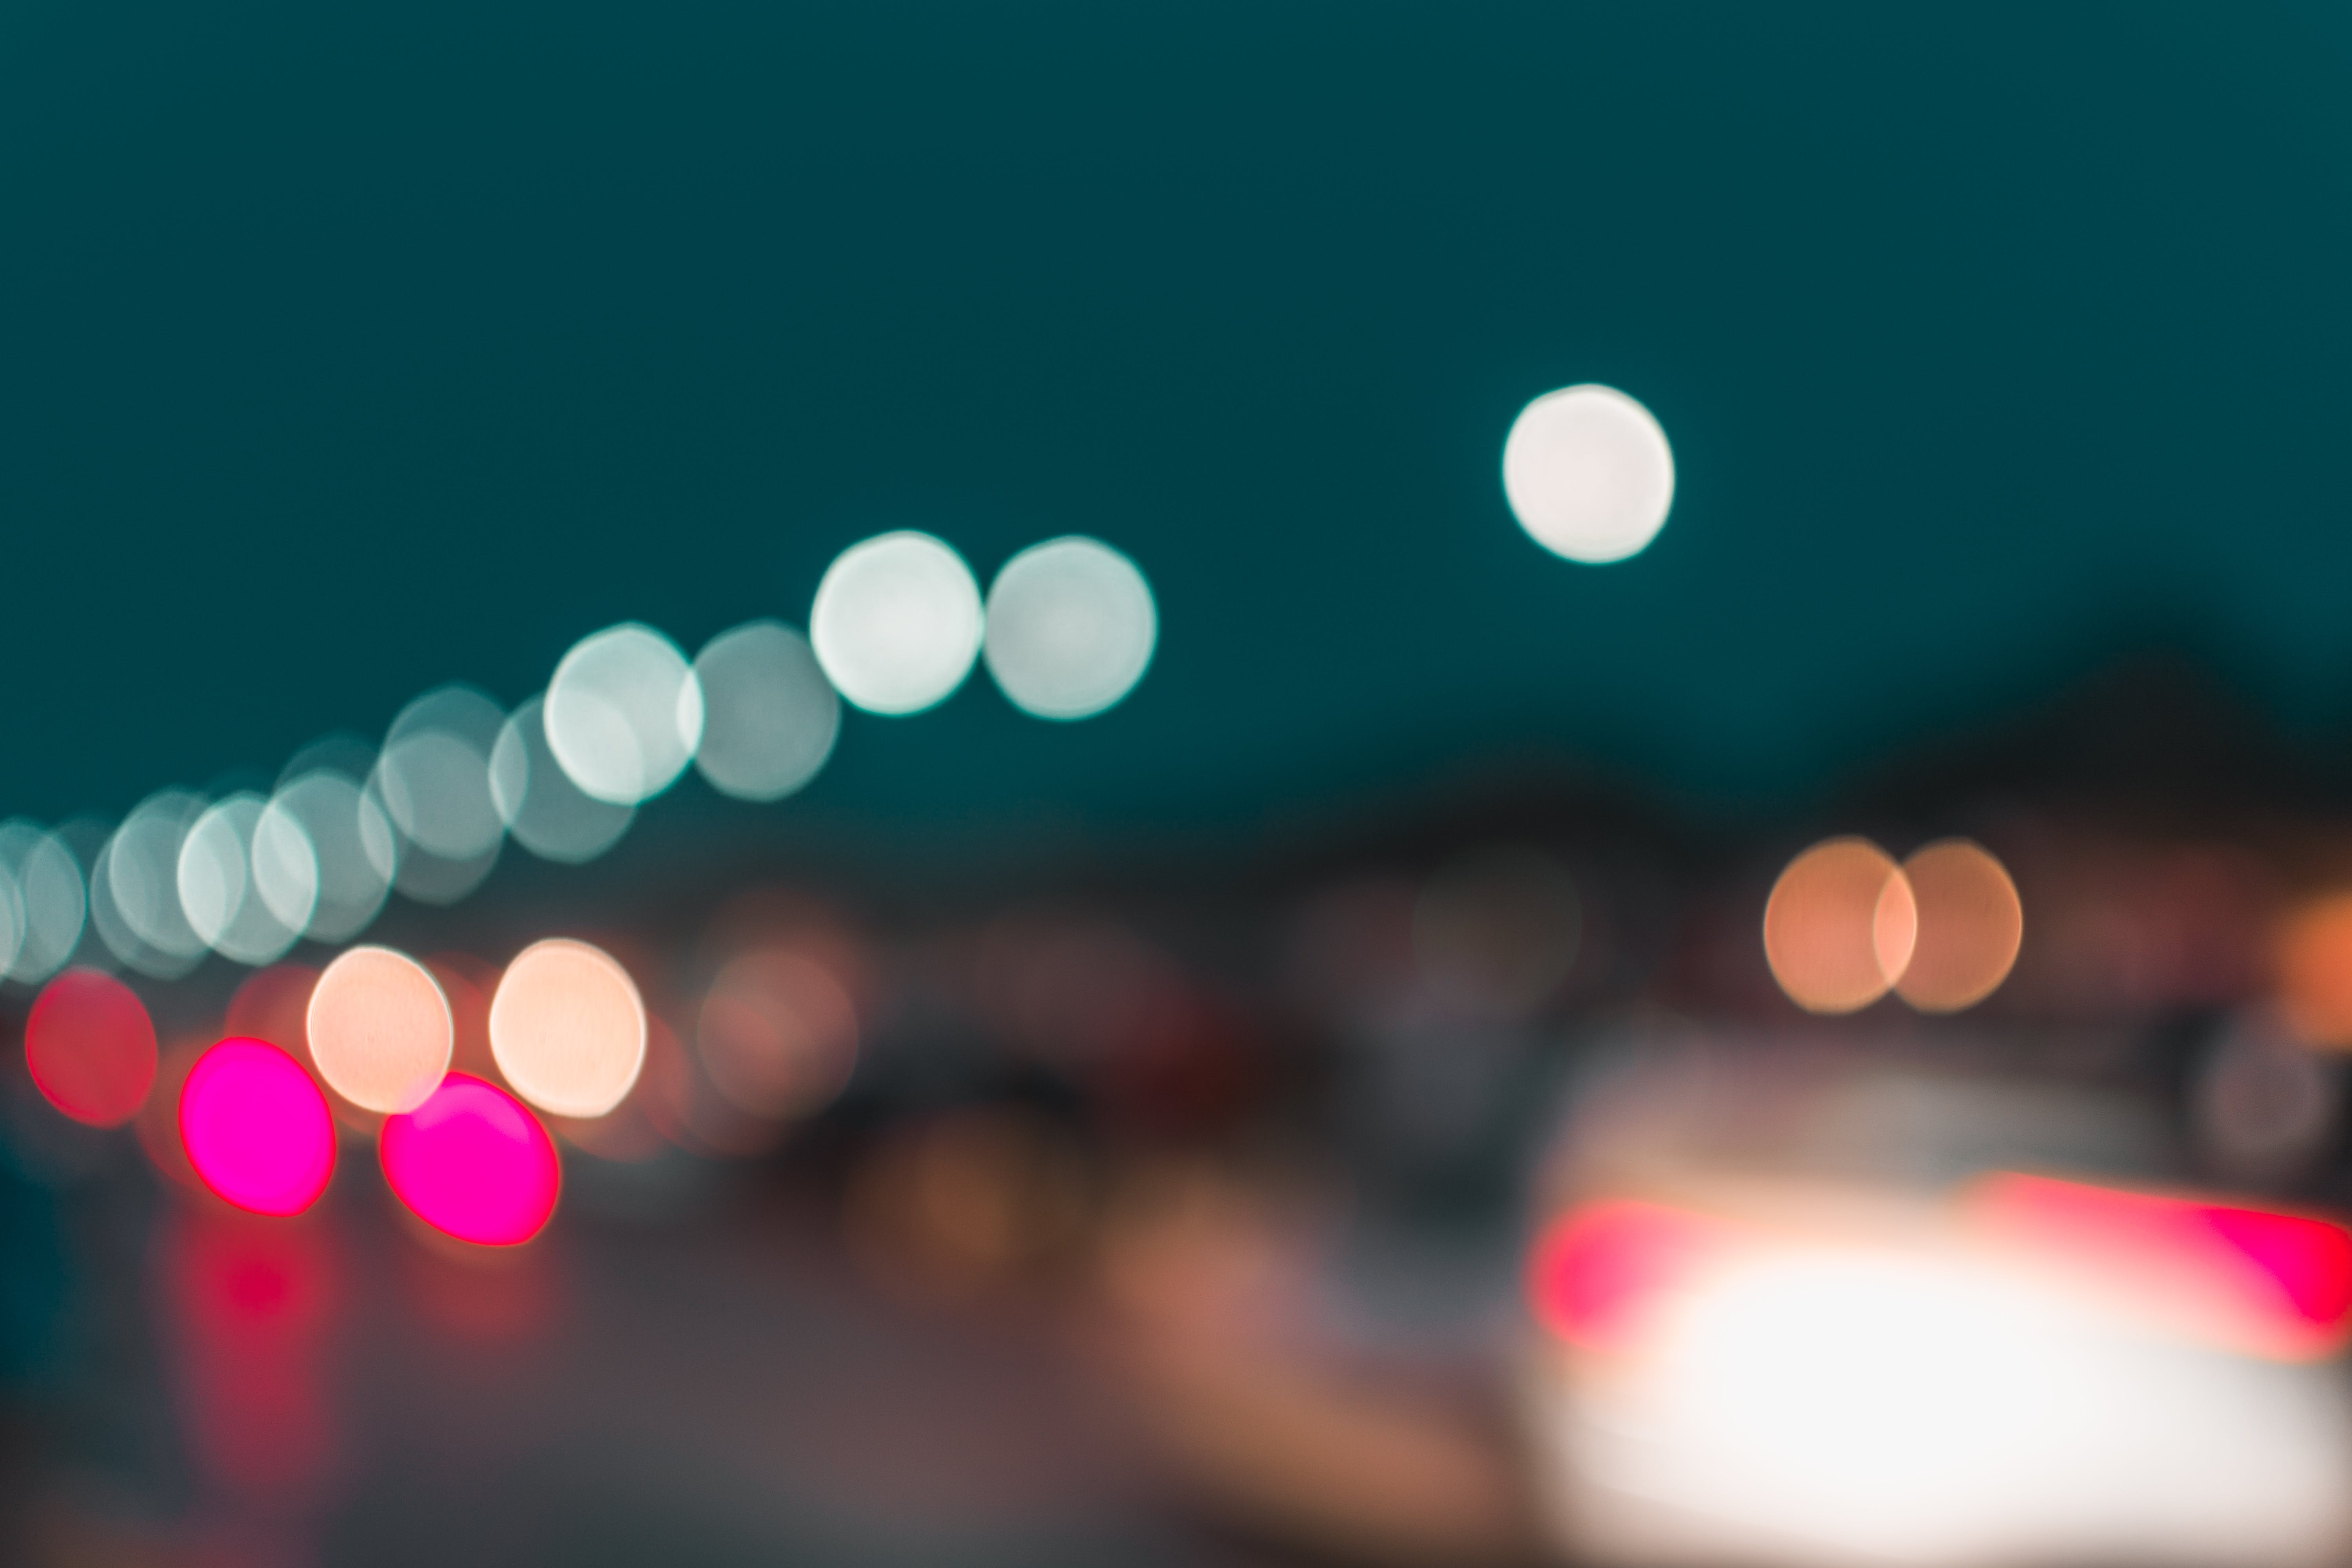 Bokeh Photography of Street Lights